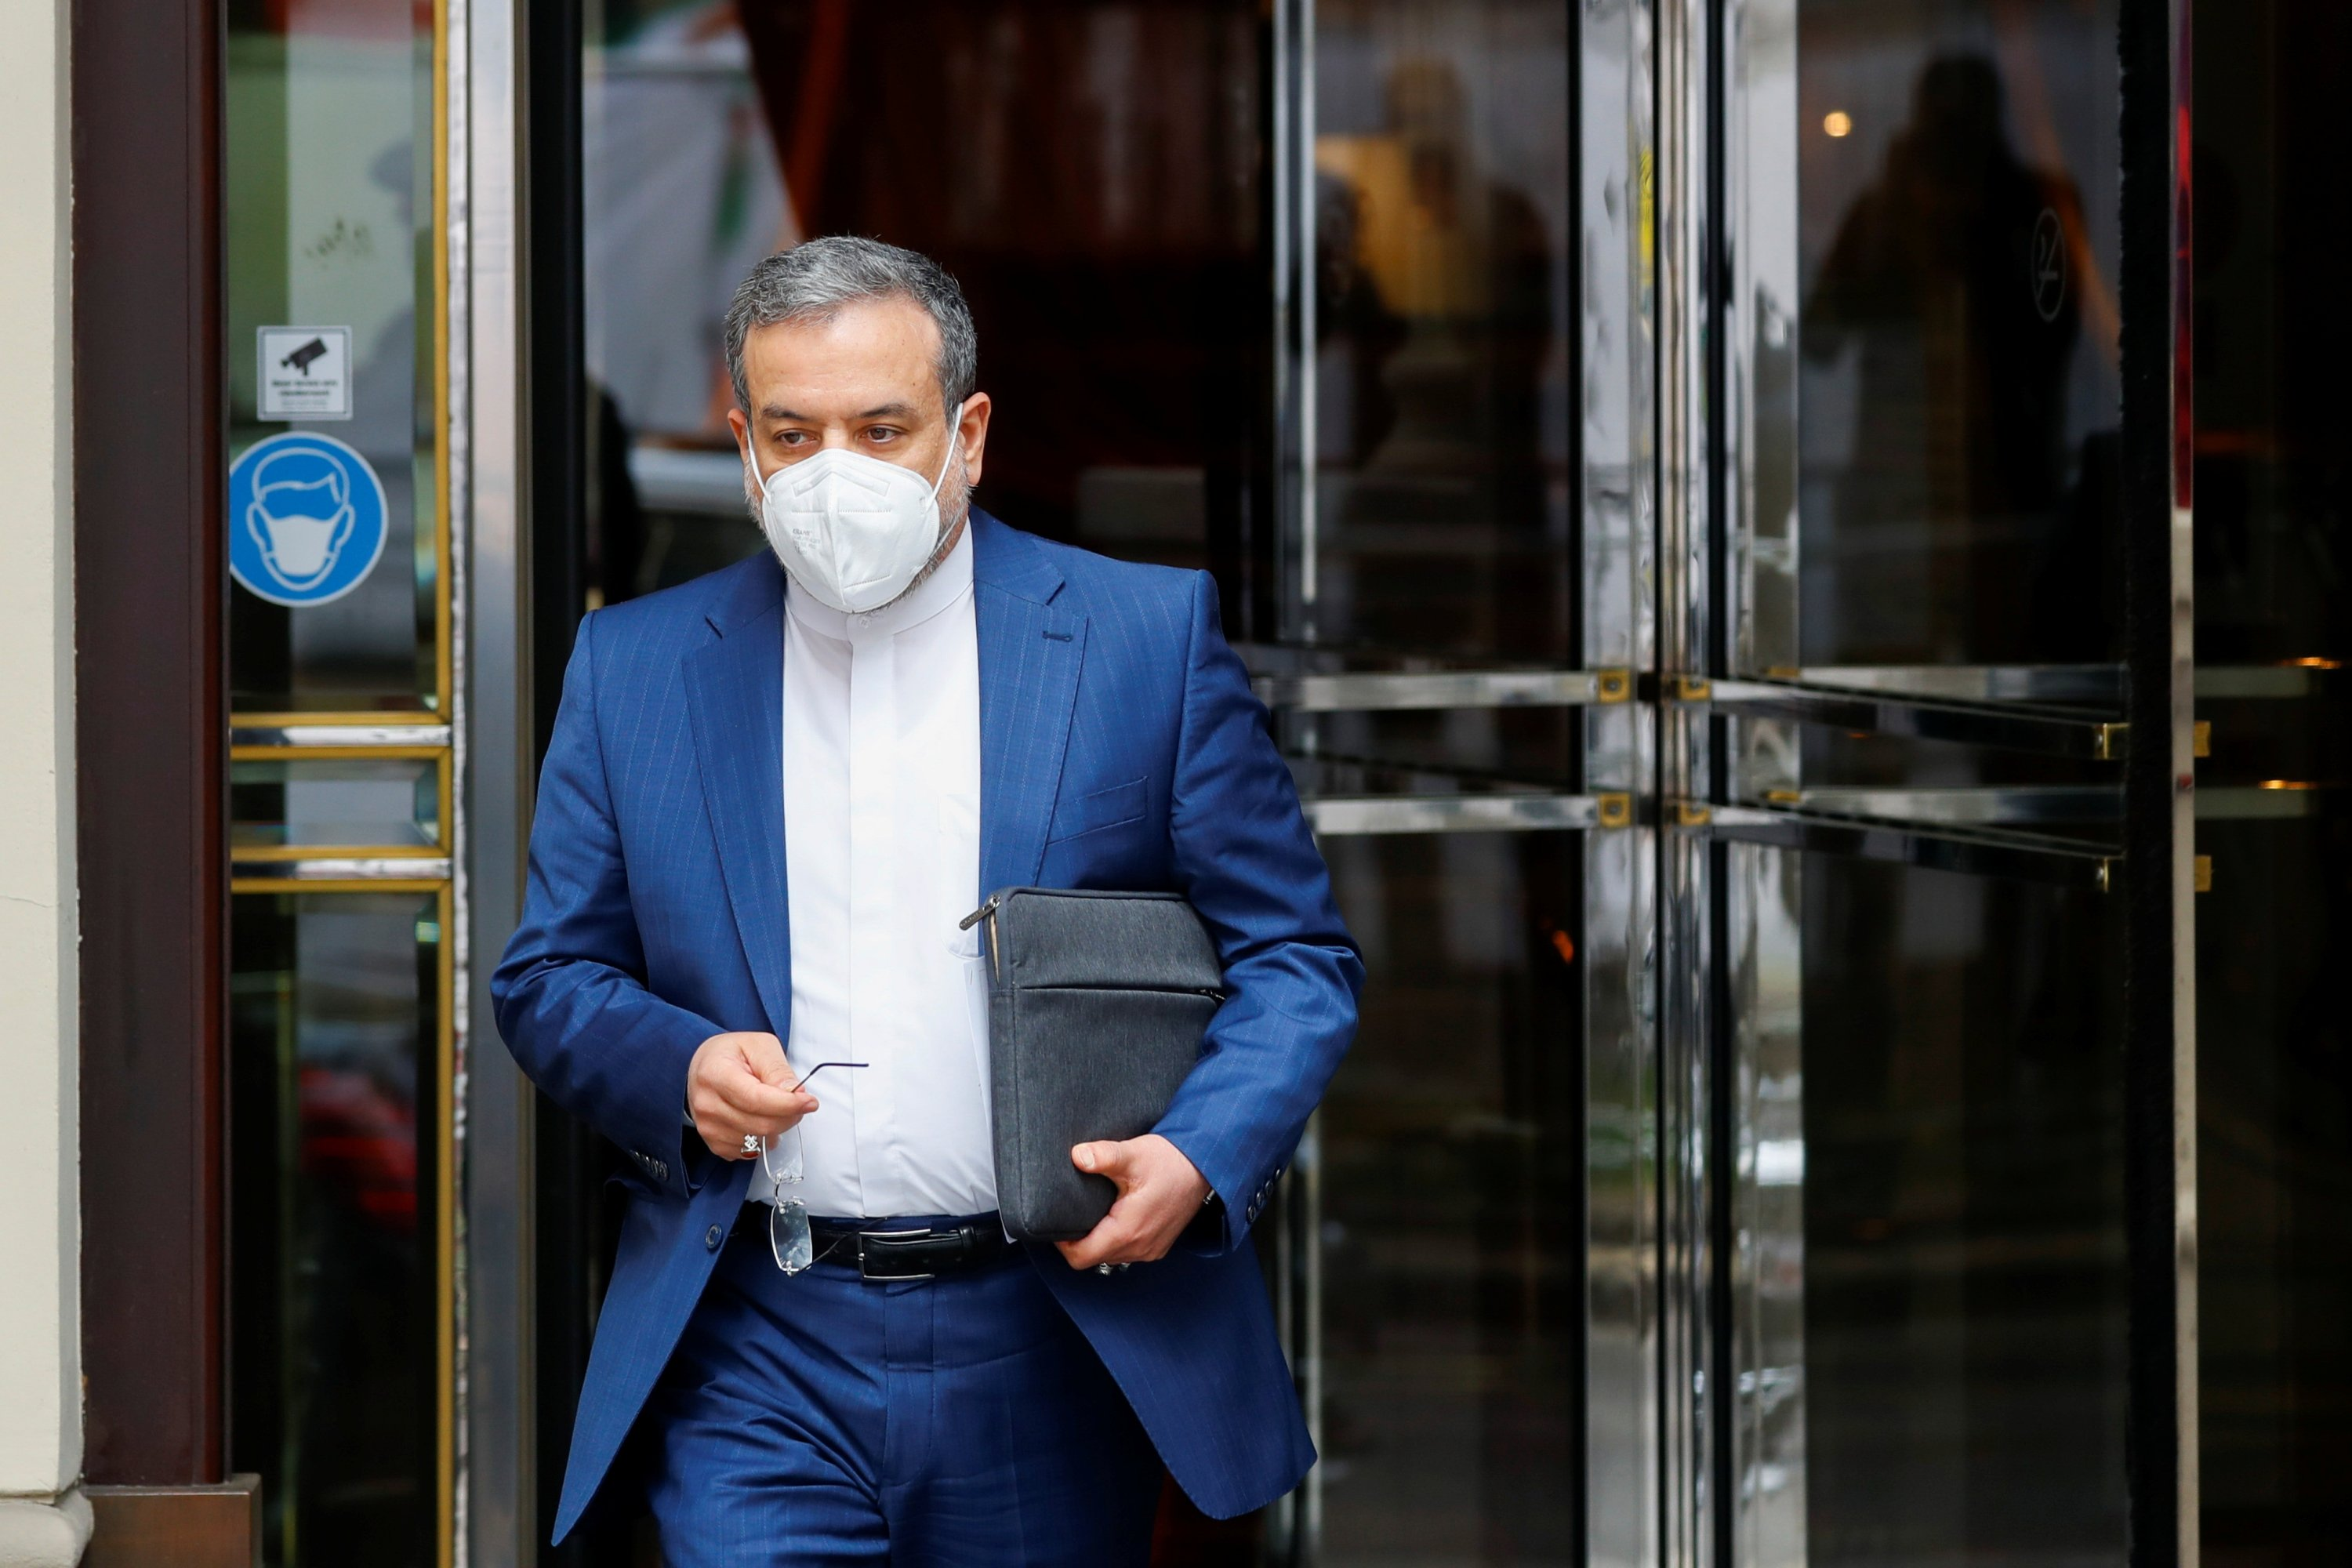 Iranian Deputy at the Ministry of Foreign Affairs Abbas Araghchi leaves a hotel ahead of the meeting of the JCPOA Joint Commission, in Vienna, Austria, April 27, 2021. (Reuters Photo)